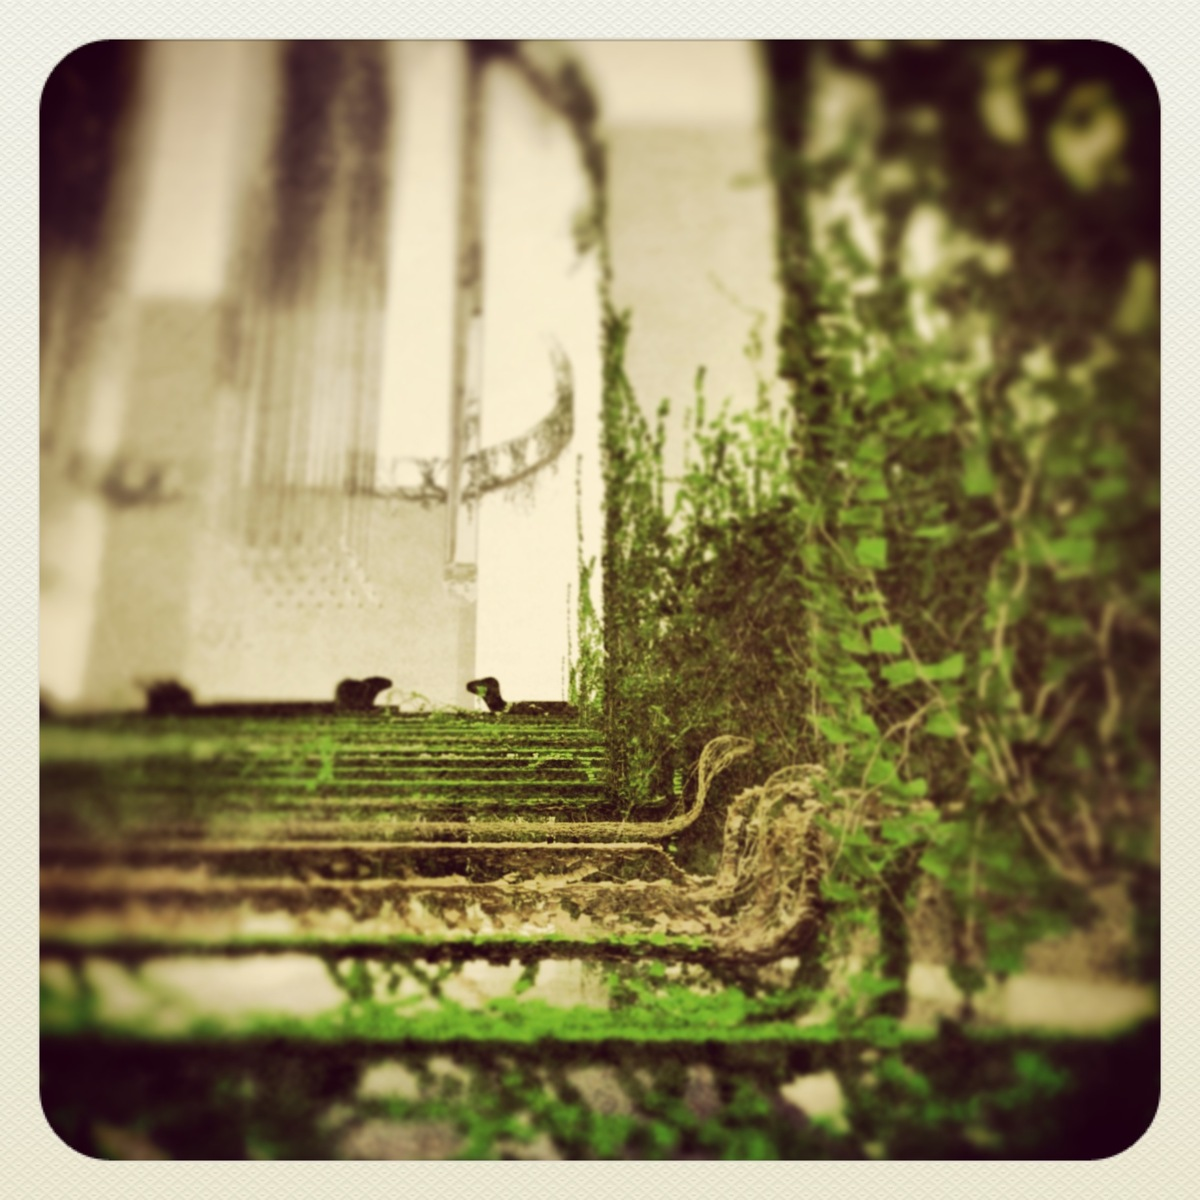 The ivy staircase of the topiary garden evokes memories that she would rather had lain dormant.